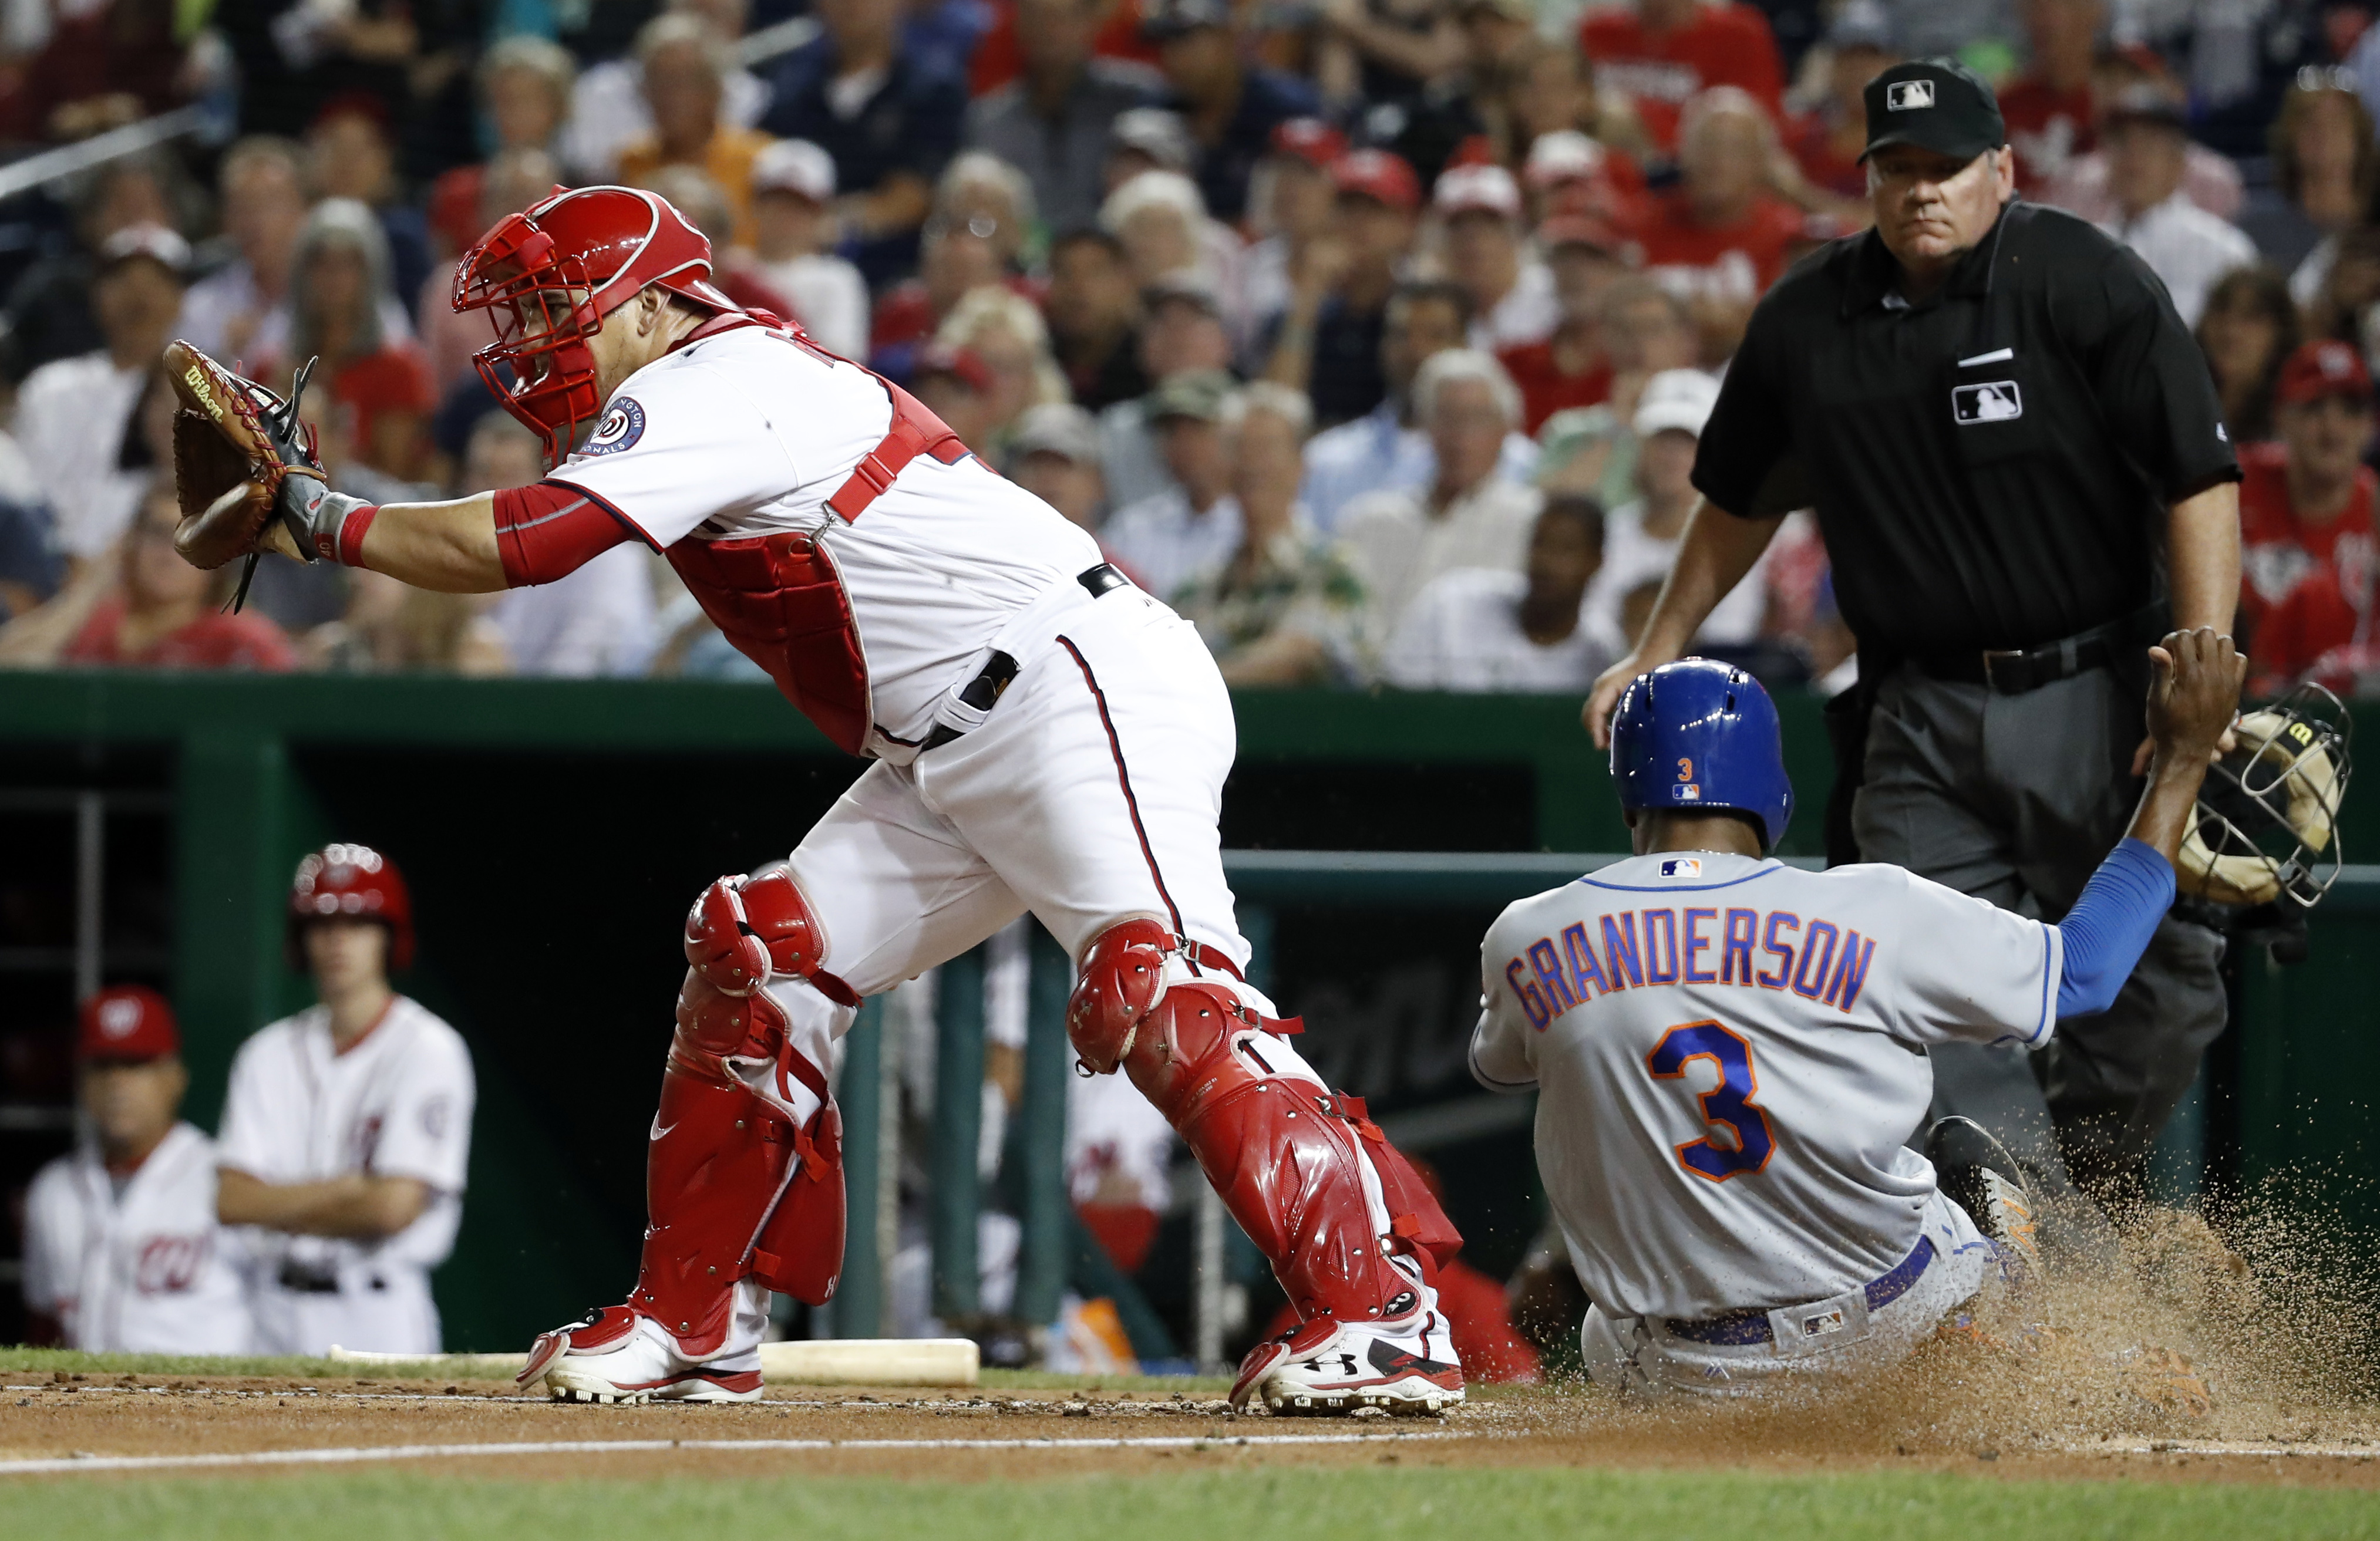 New York Mets' Curtis Granderson (3) scores off T.J. Rivera's sacrifice fly as Washington Nationals catcher Wilson Ramos (40) waits for the throw during the fifth inning of a baseball game at Nationals Park, Tuesday, Sept. 13, 2016, in Washington. (AP Pho